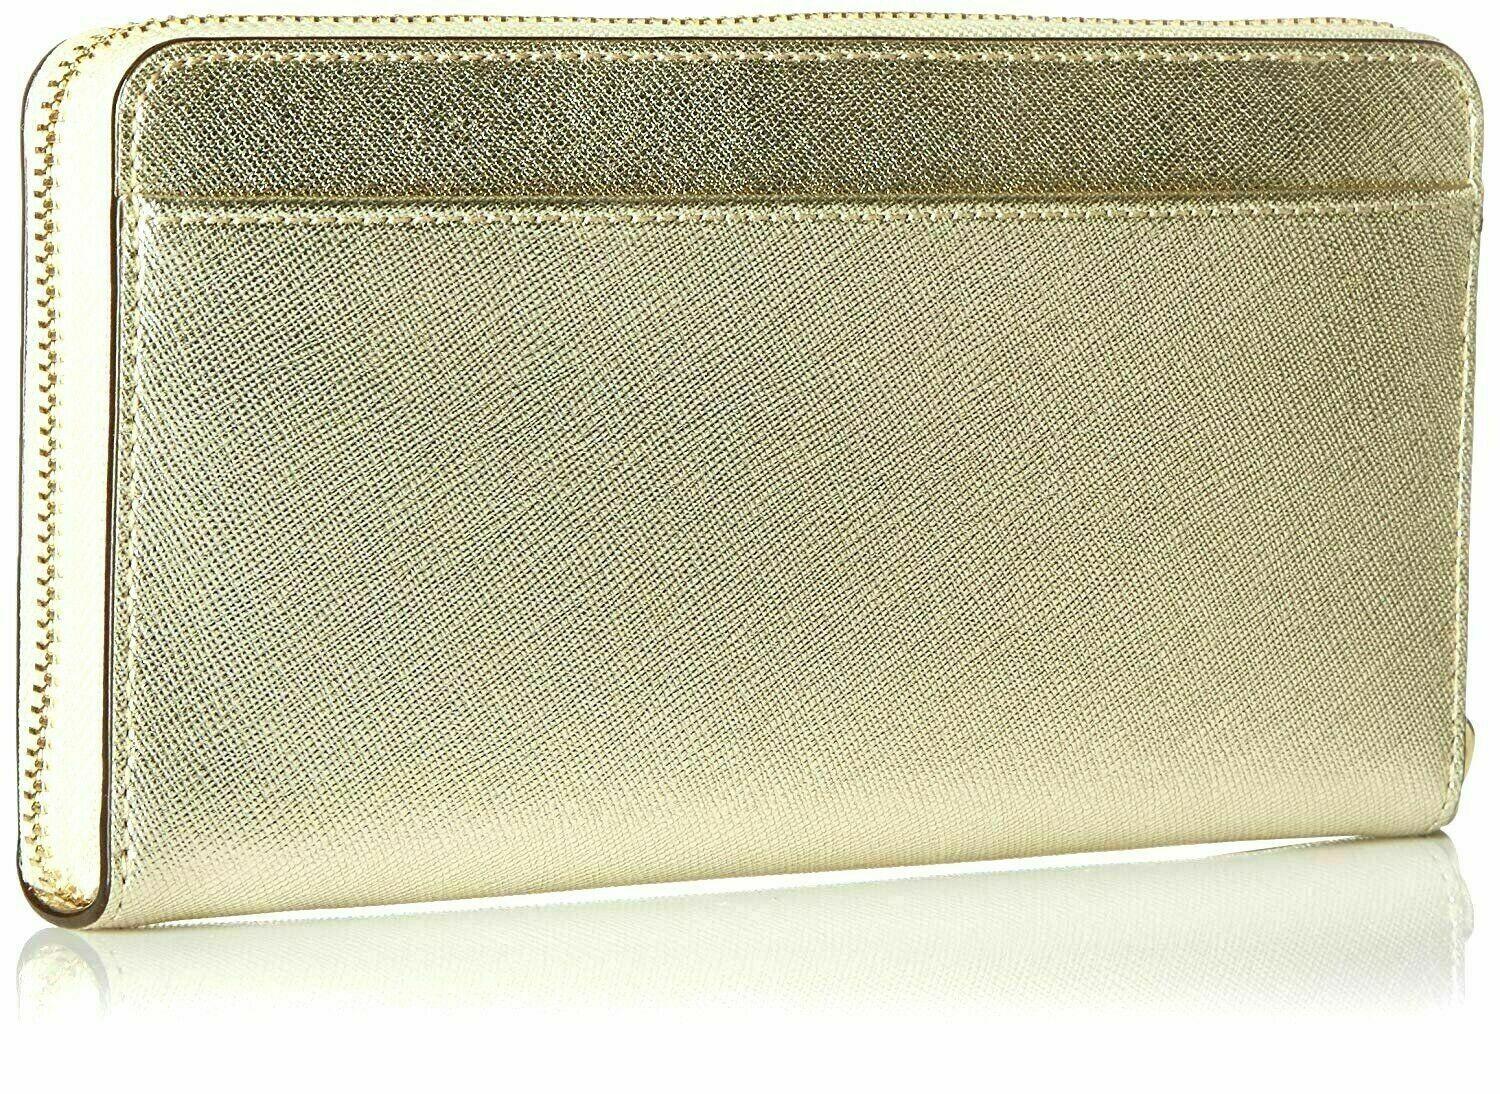 Kate Spade New York Cameron Street Lacey Gold Leather Women's Wallet - New!